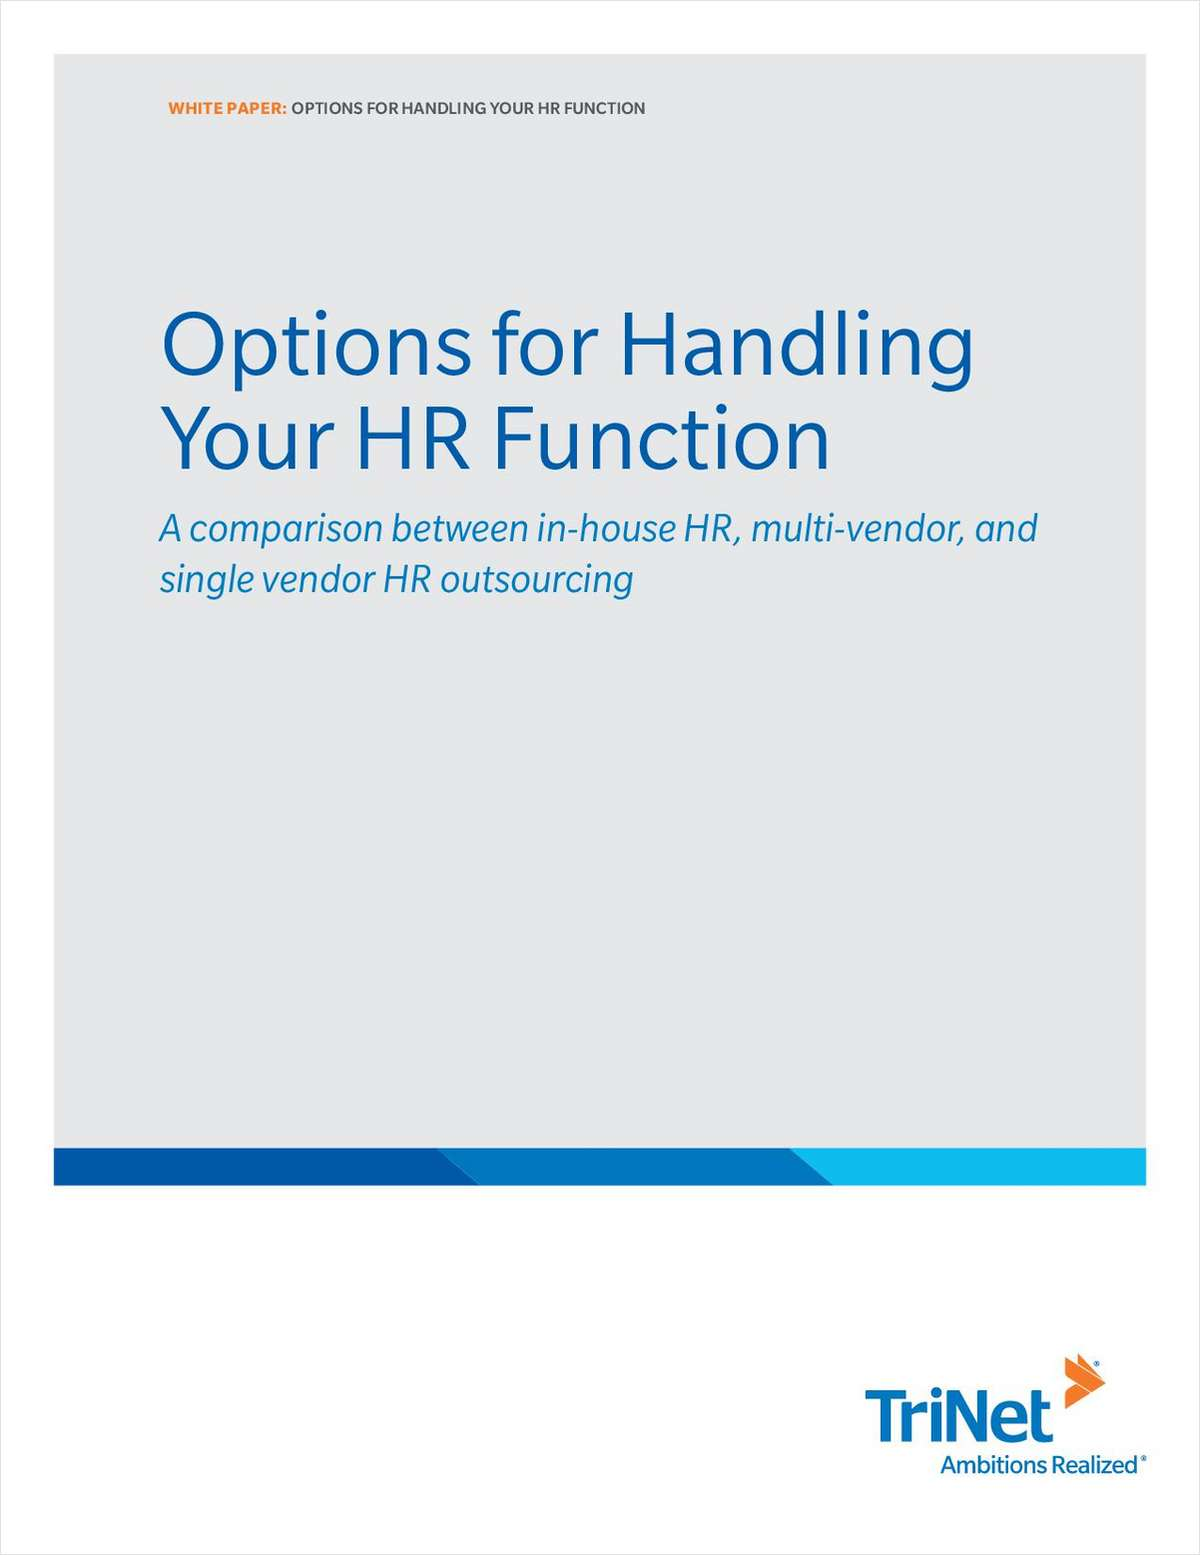 Options for Handling Your HR Functions